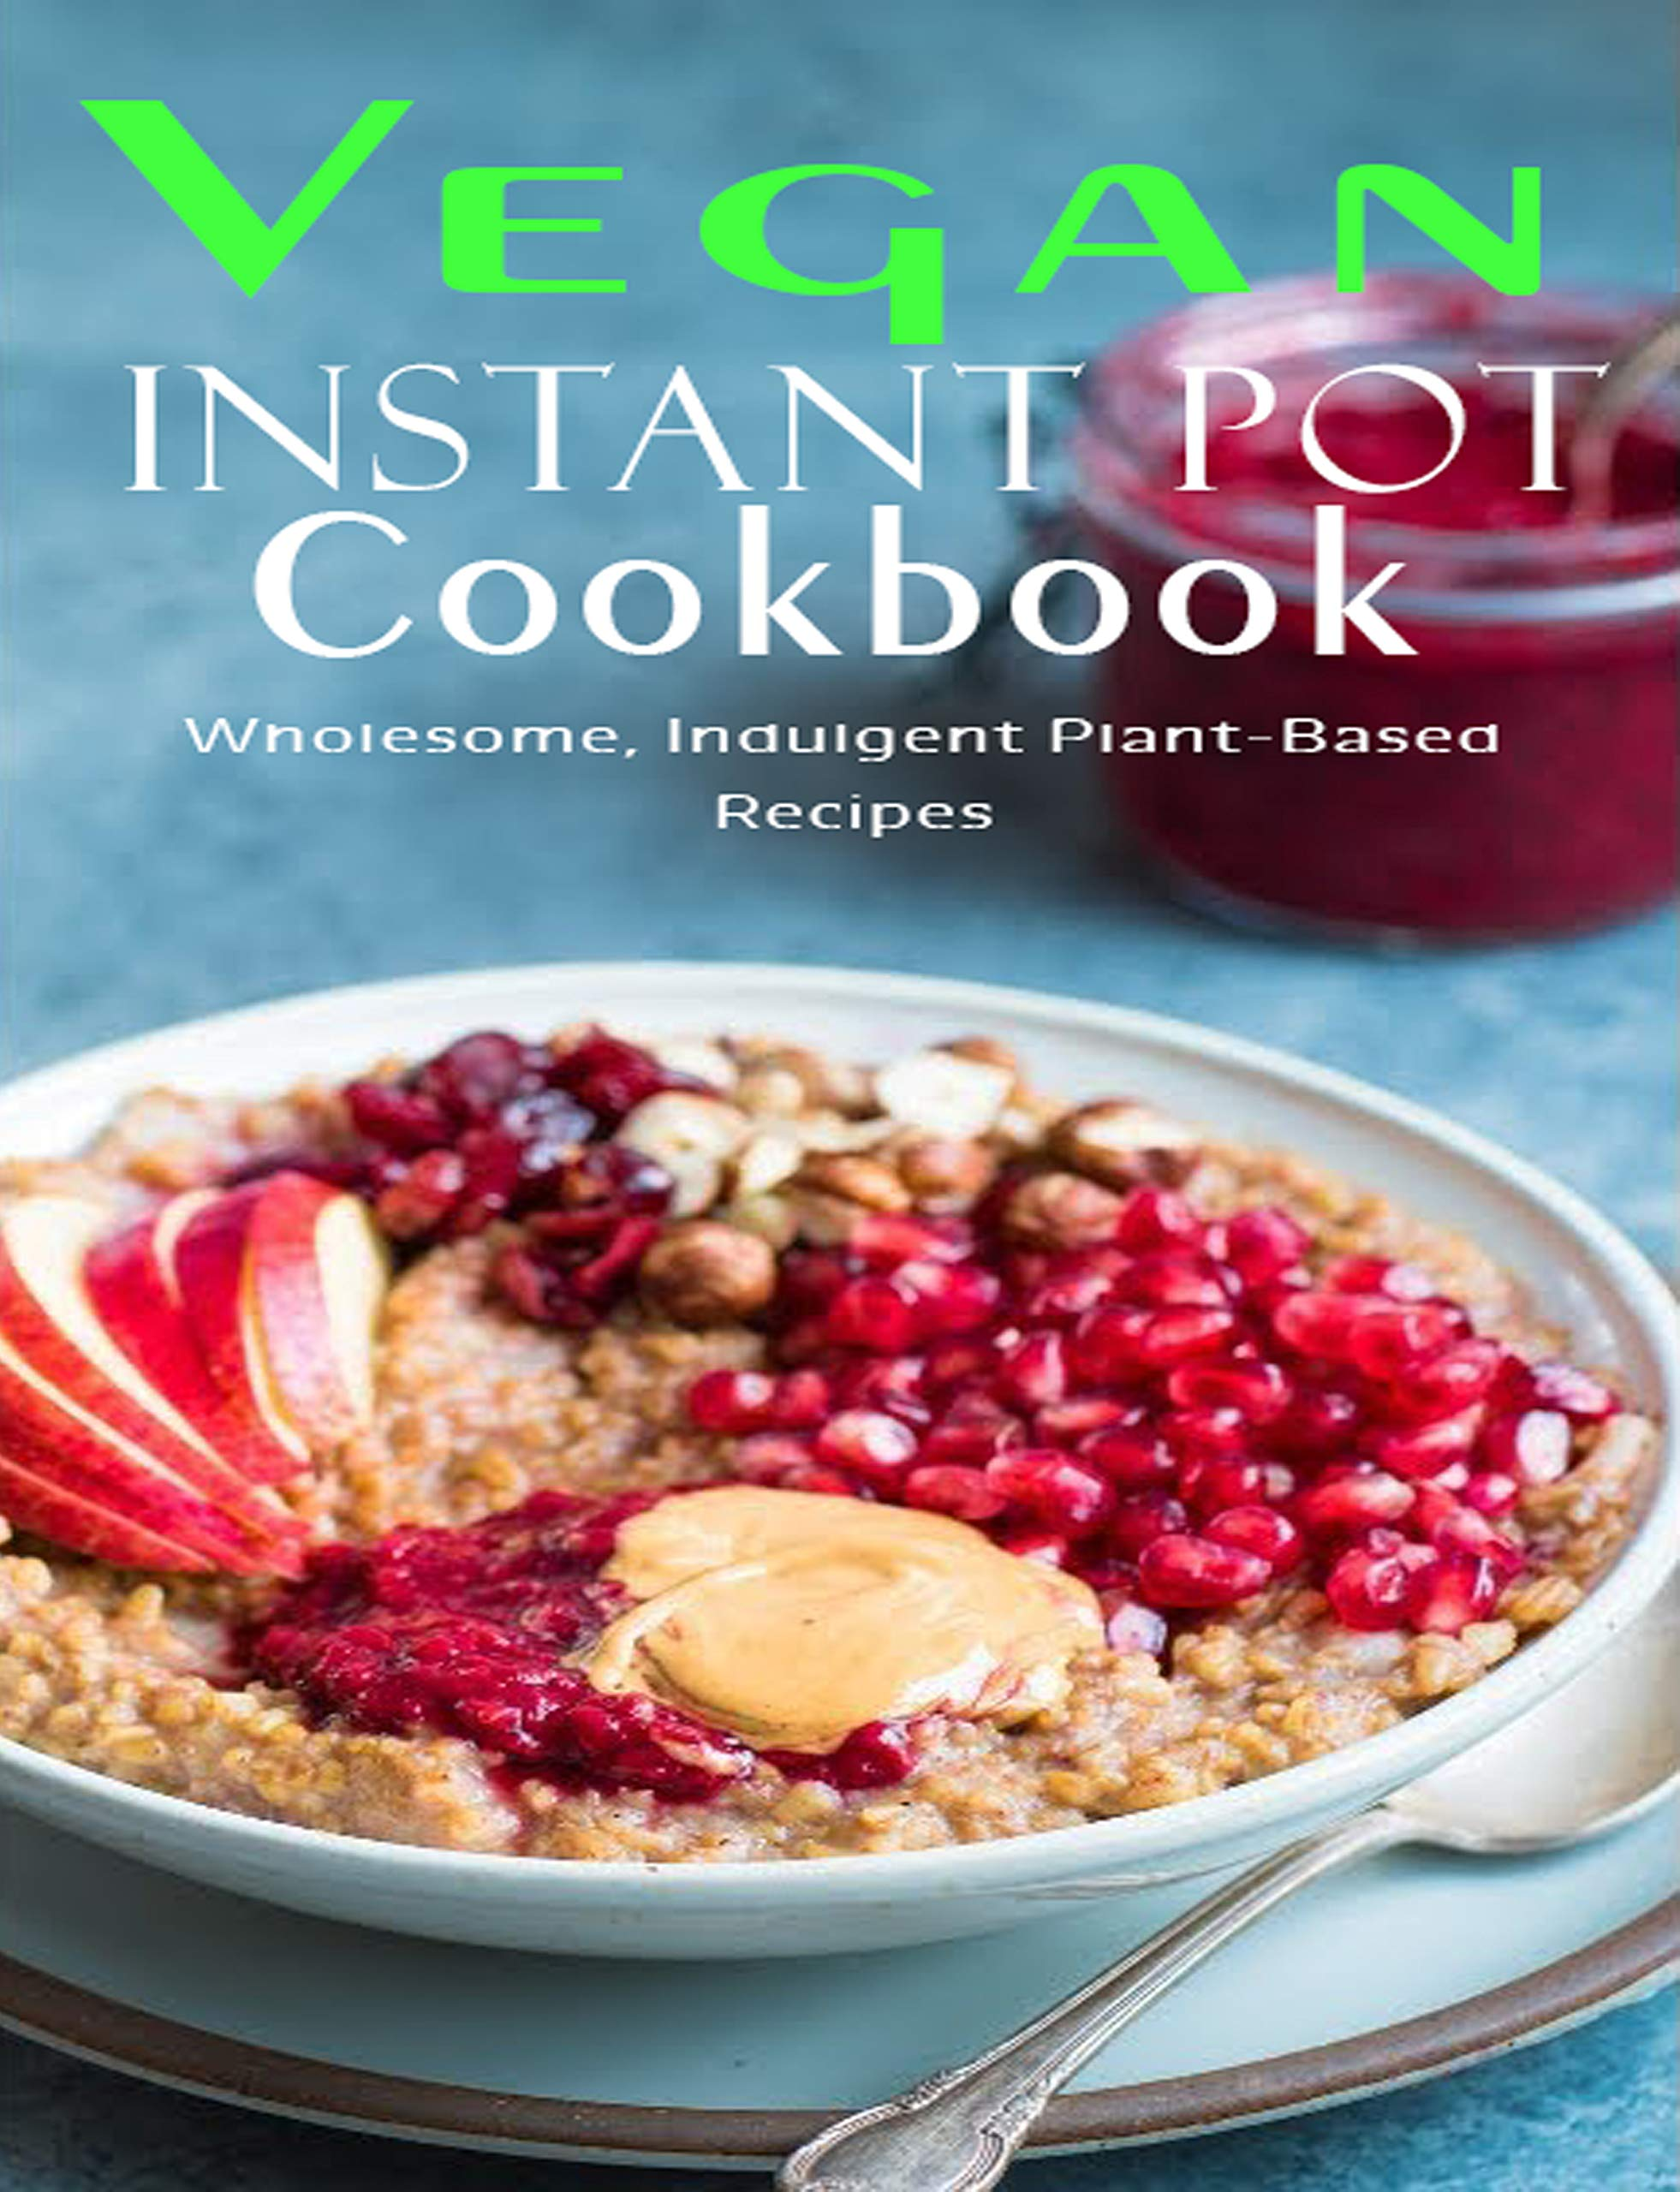 Vegan Instant Pot Cookbook: Wholesome , Indulgent Plant - Based Recipes